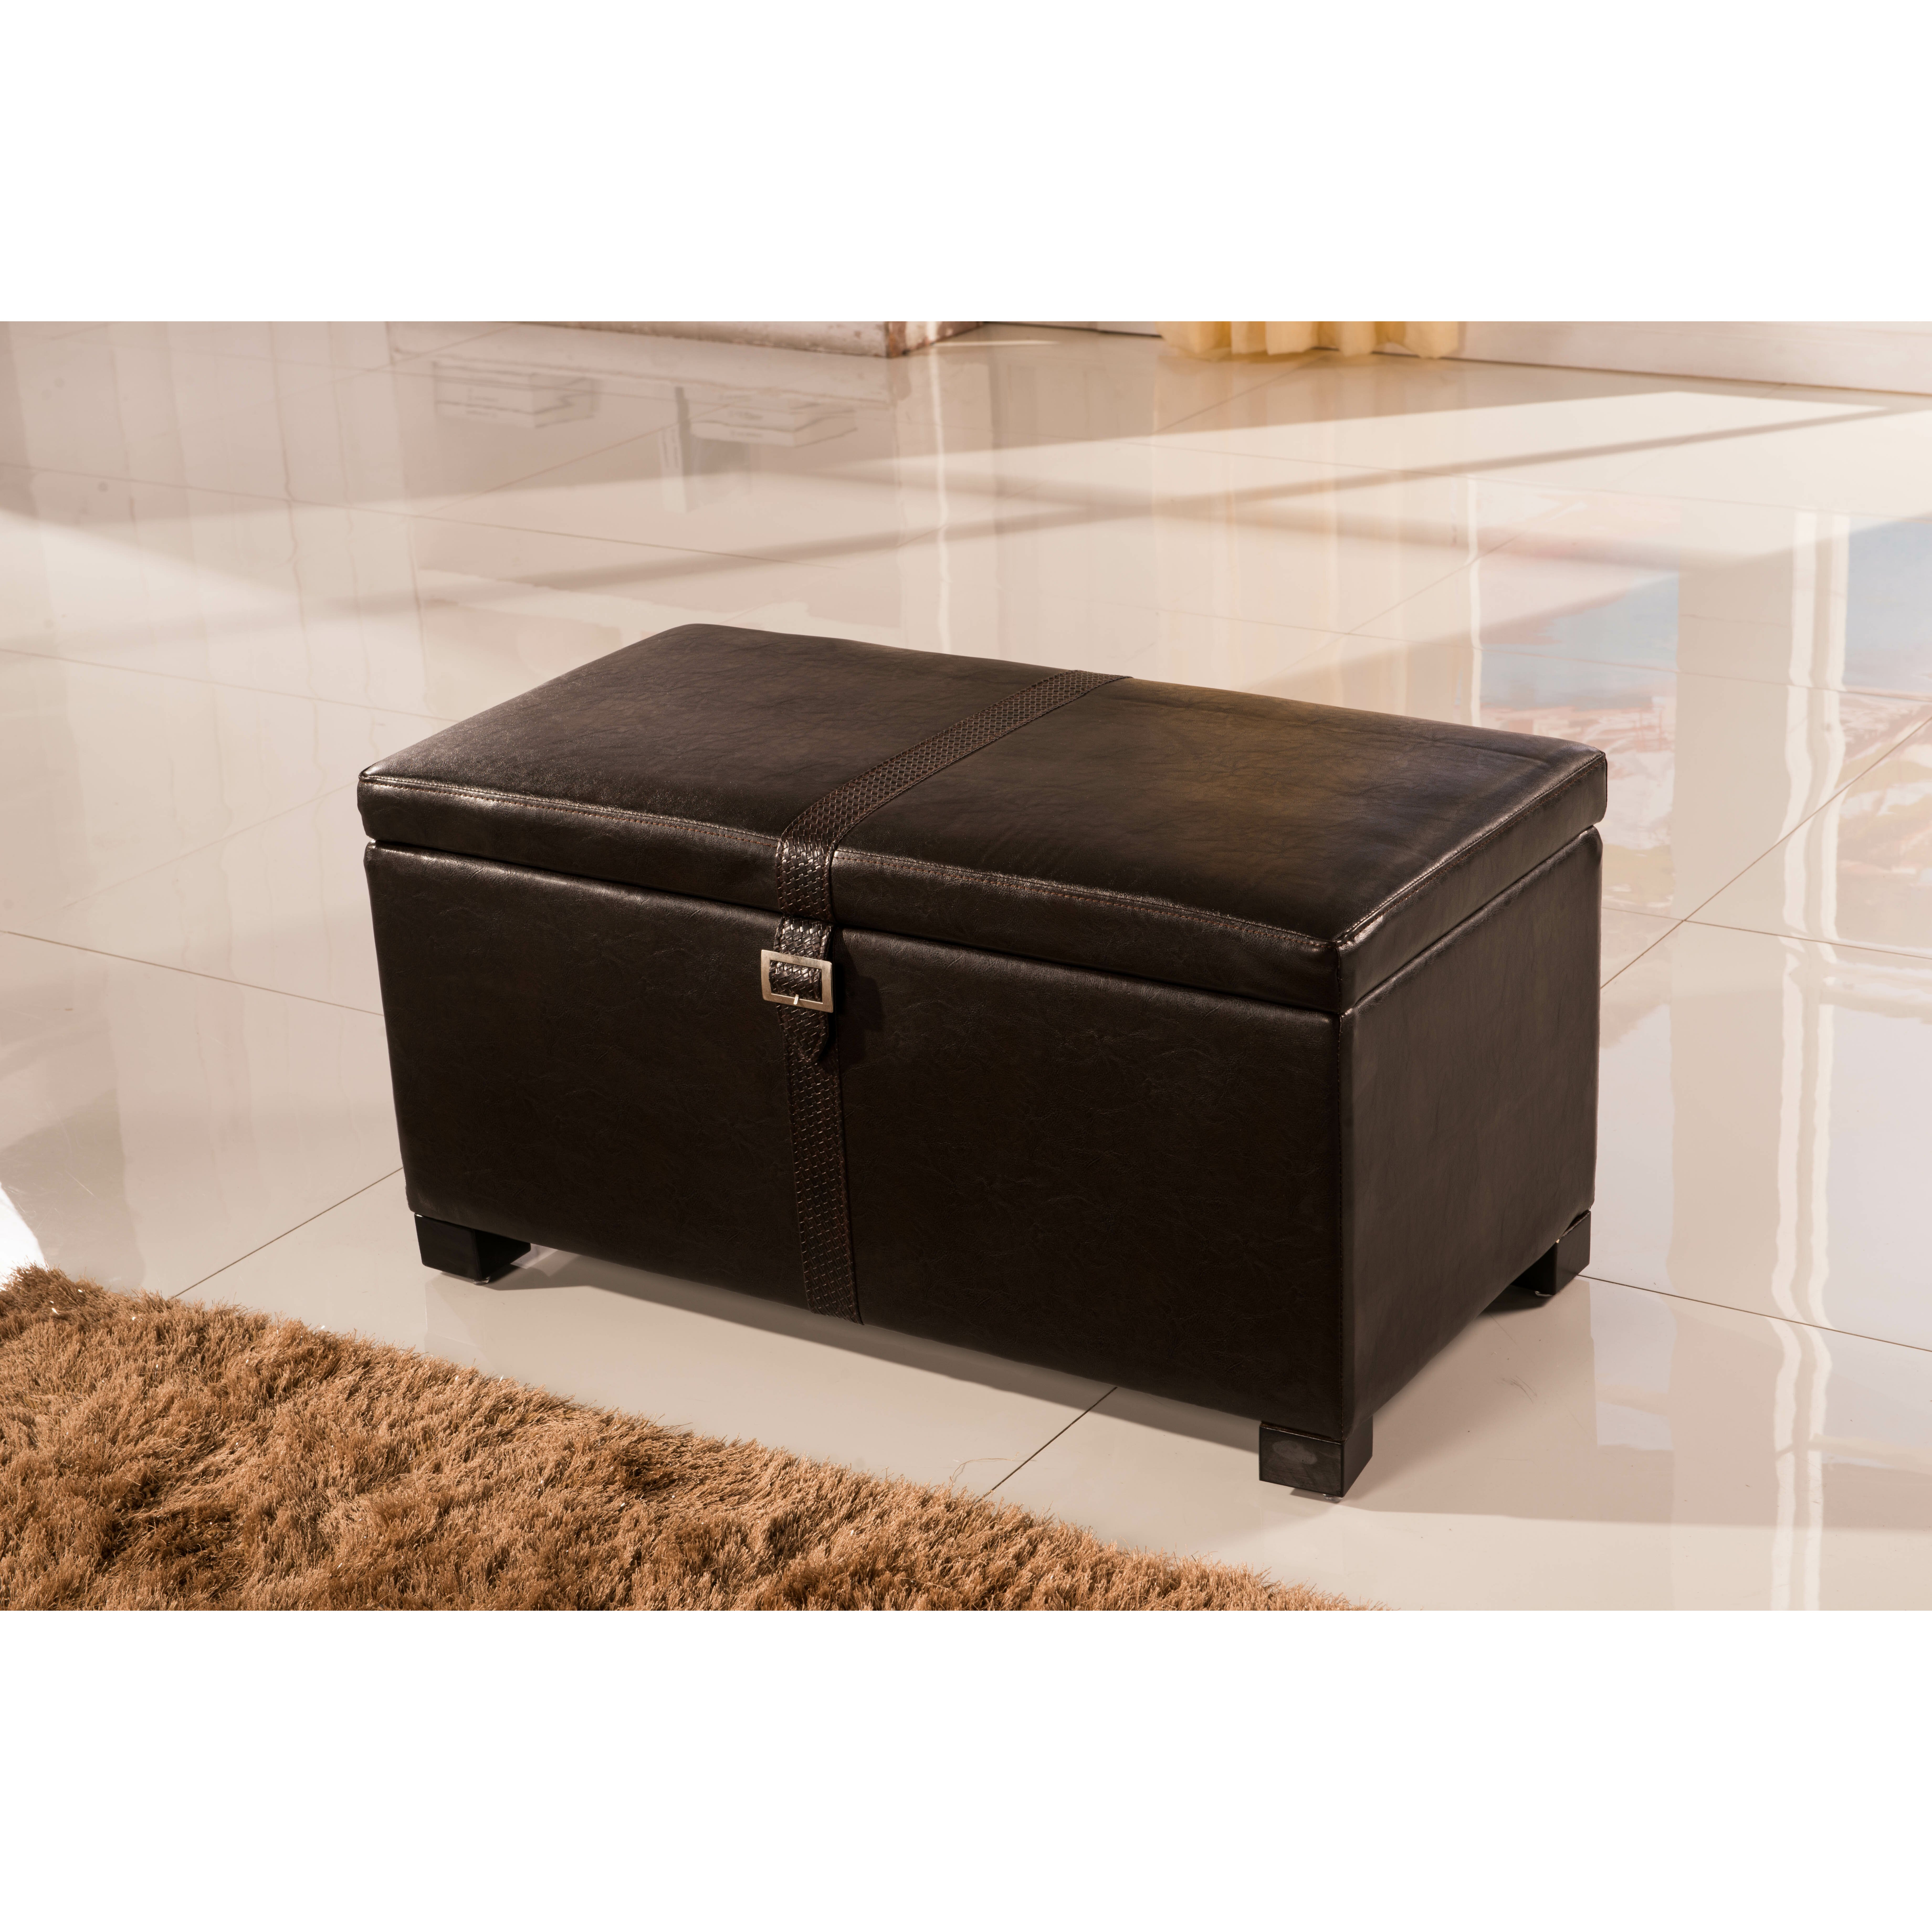 Bellasario Collection Royal Comfort Upholstered Storage Bedroom Bench